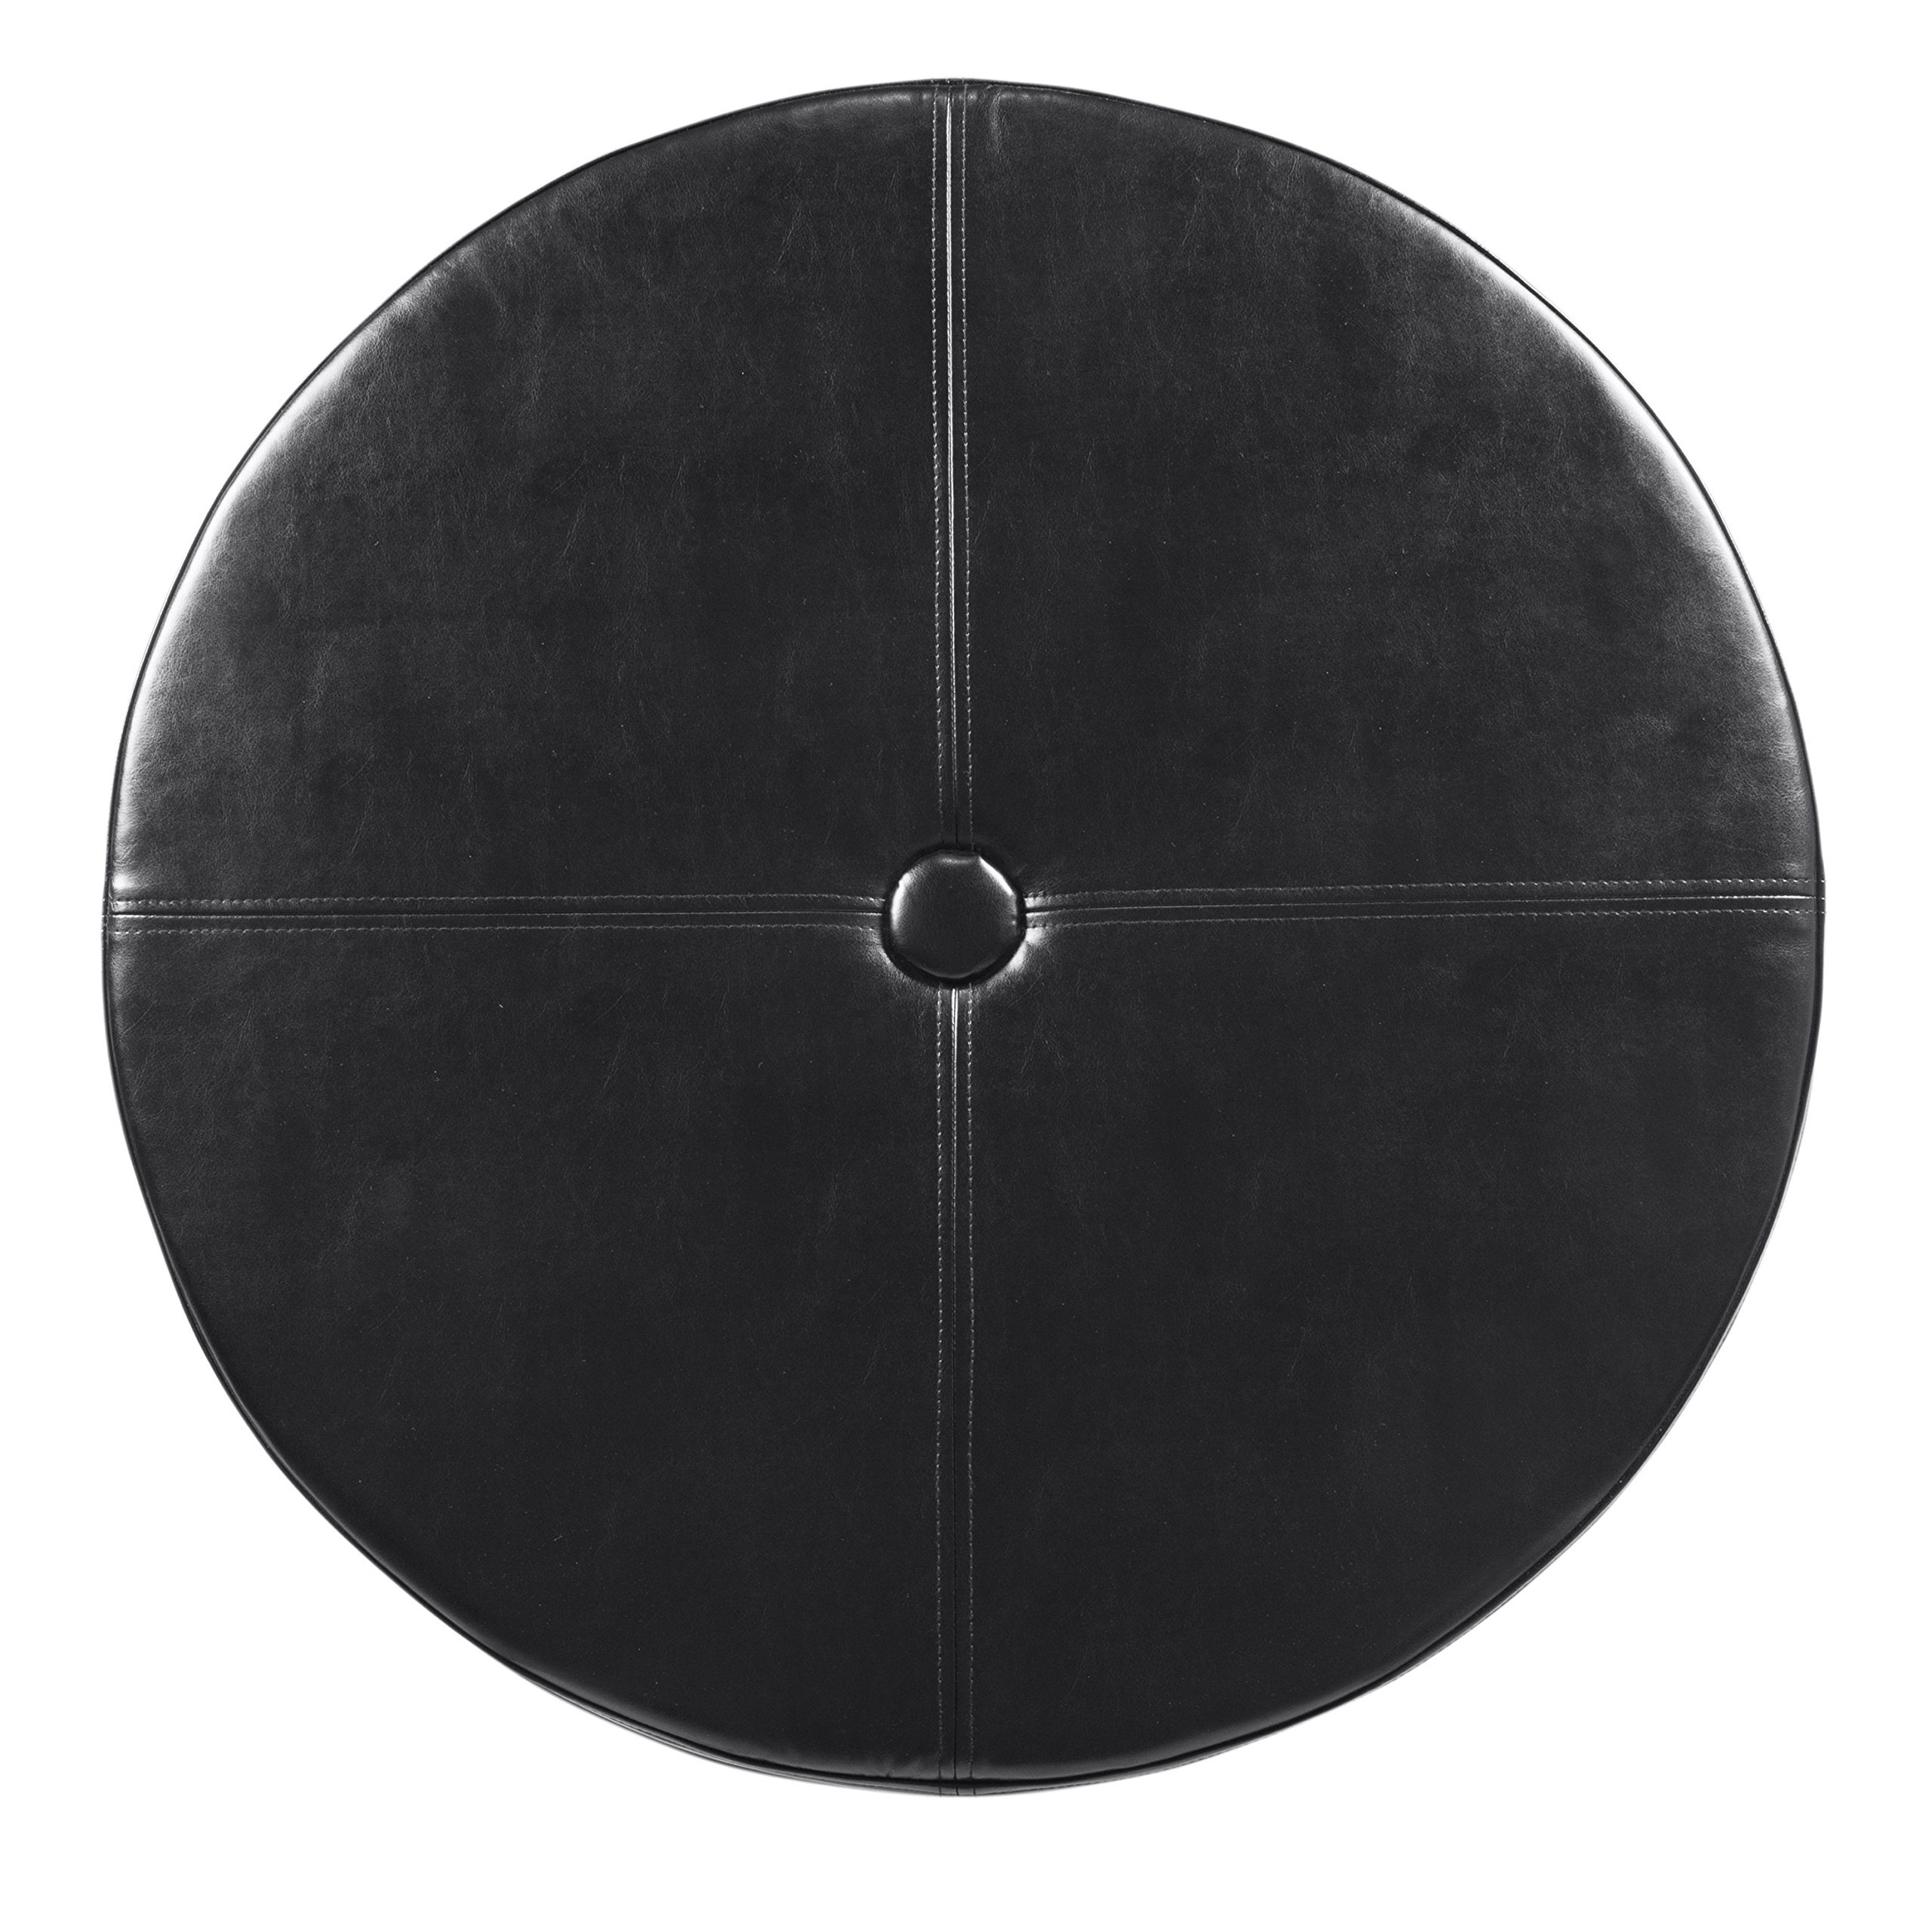 HomePop K5508-E676 Leatherette Round Button Tufted Storage Ottoman, 31.75'' x 16.50'', Black by HomePop (Image #7)